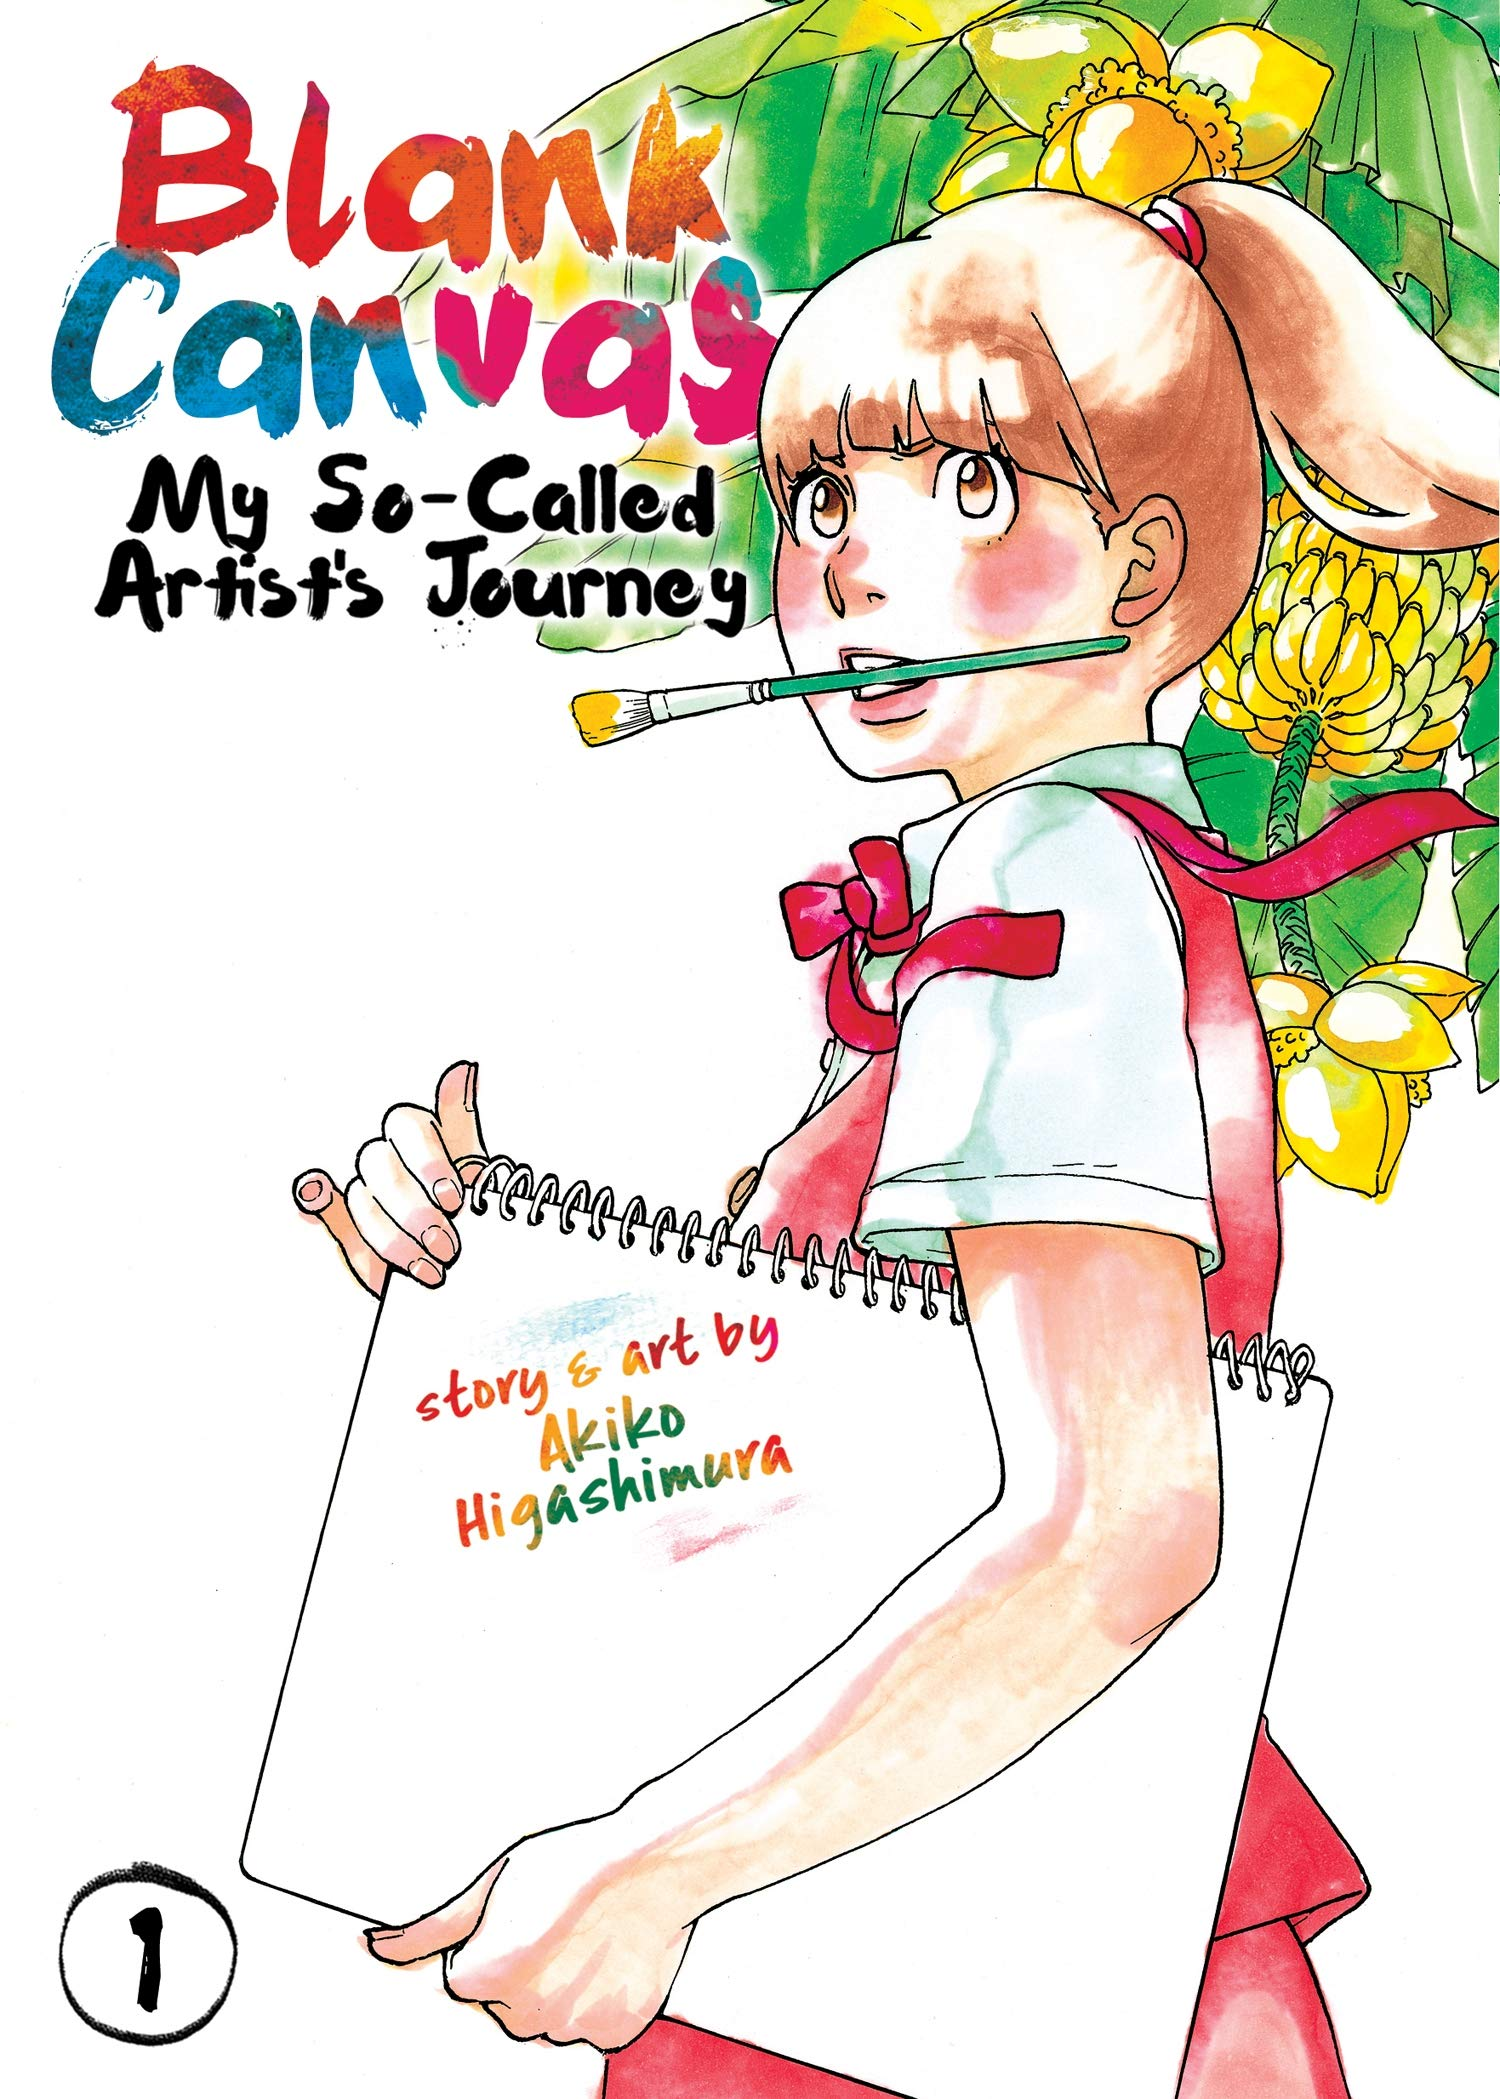 Best Comics of 2019: Blank Canvas: My So-Called Artist's Journey